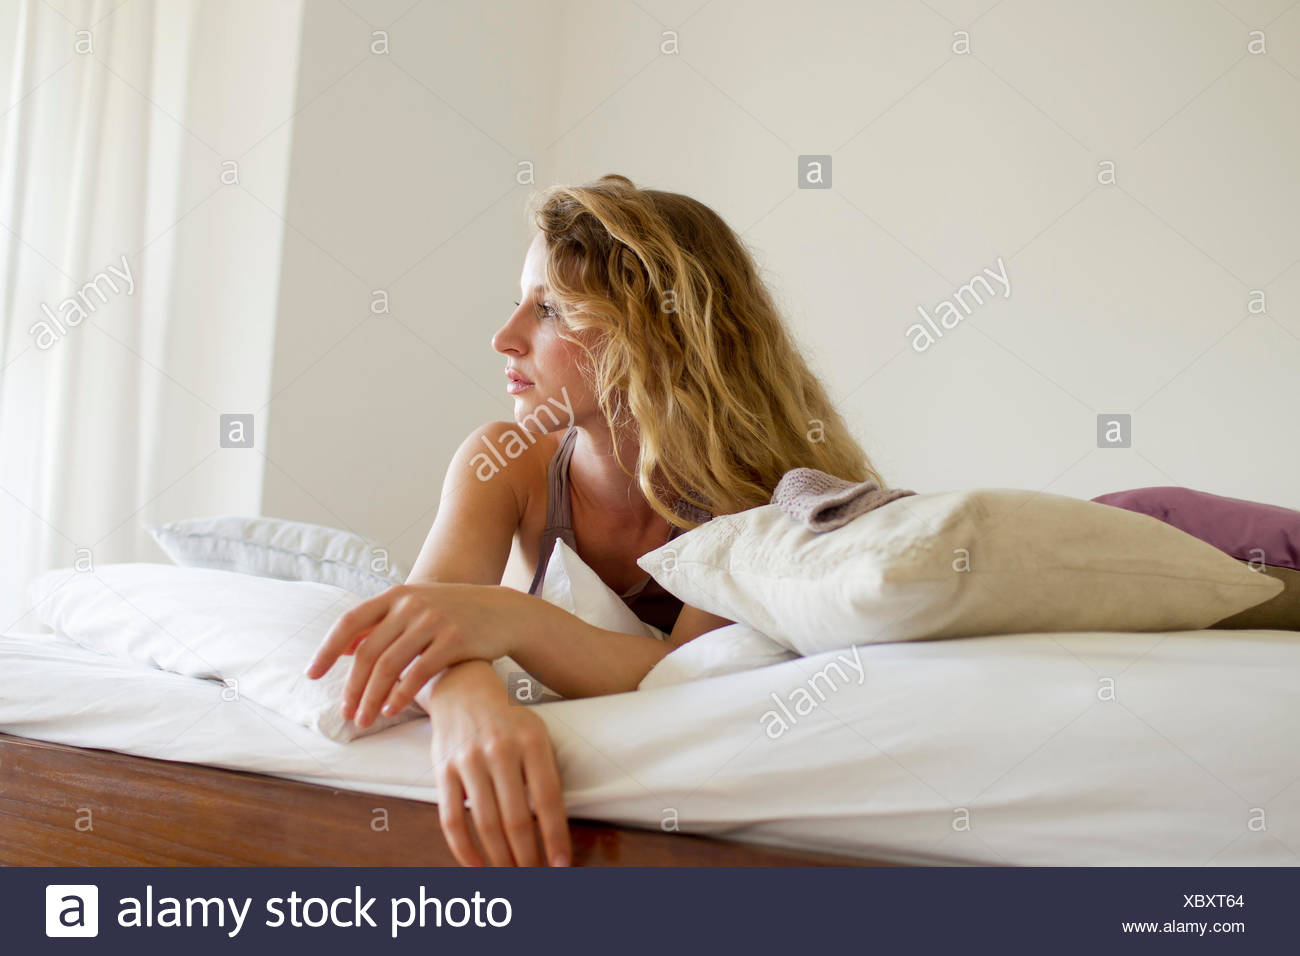 Woman lying in bed day-dreaming - Stock Image